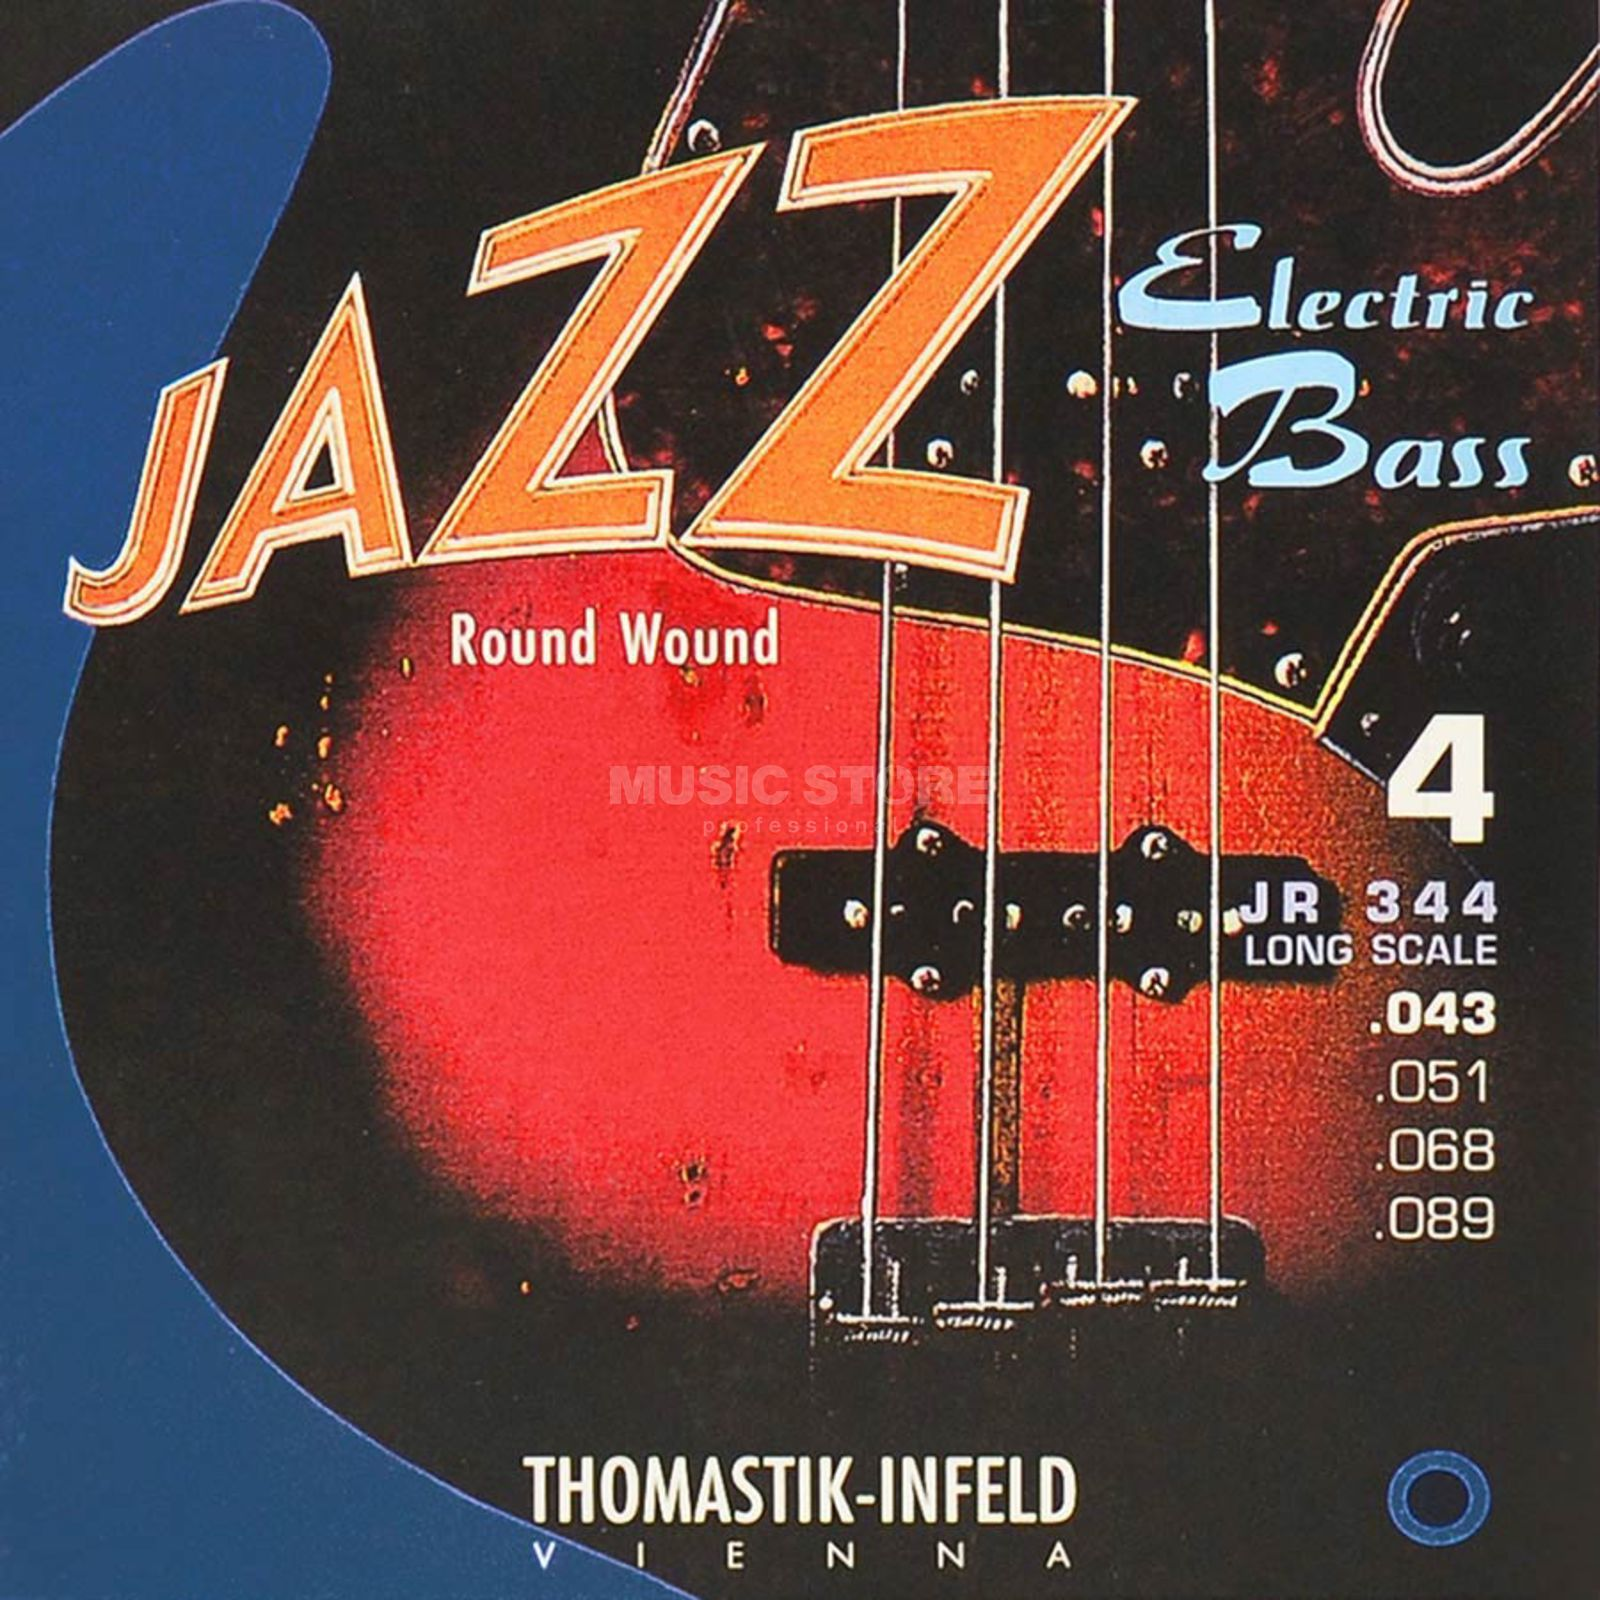 Thomastik 4 Bass Strings JR 344 43-89 Nickel Round Wound Zdjęcie produktu